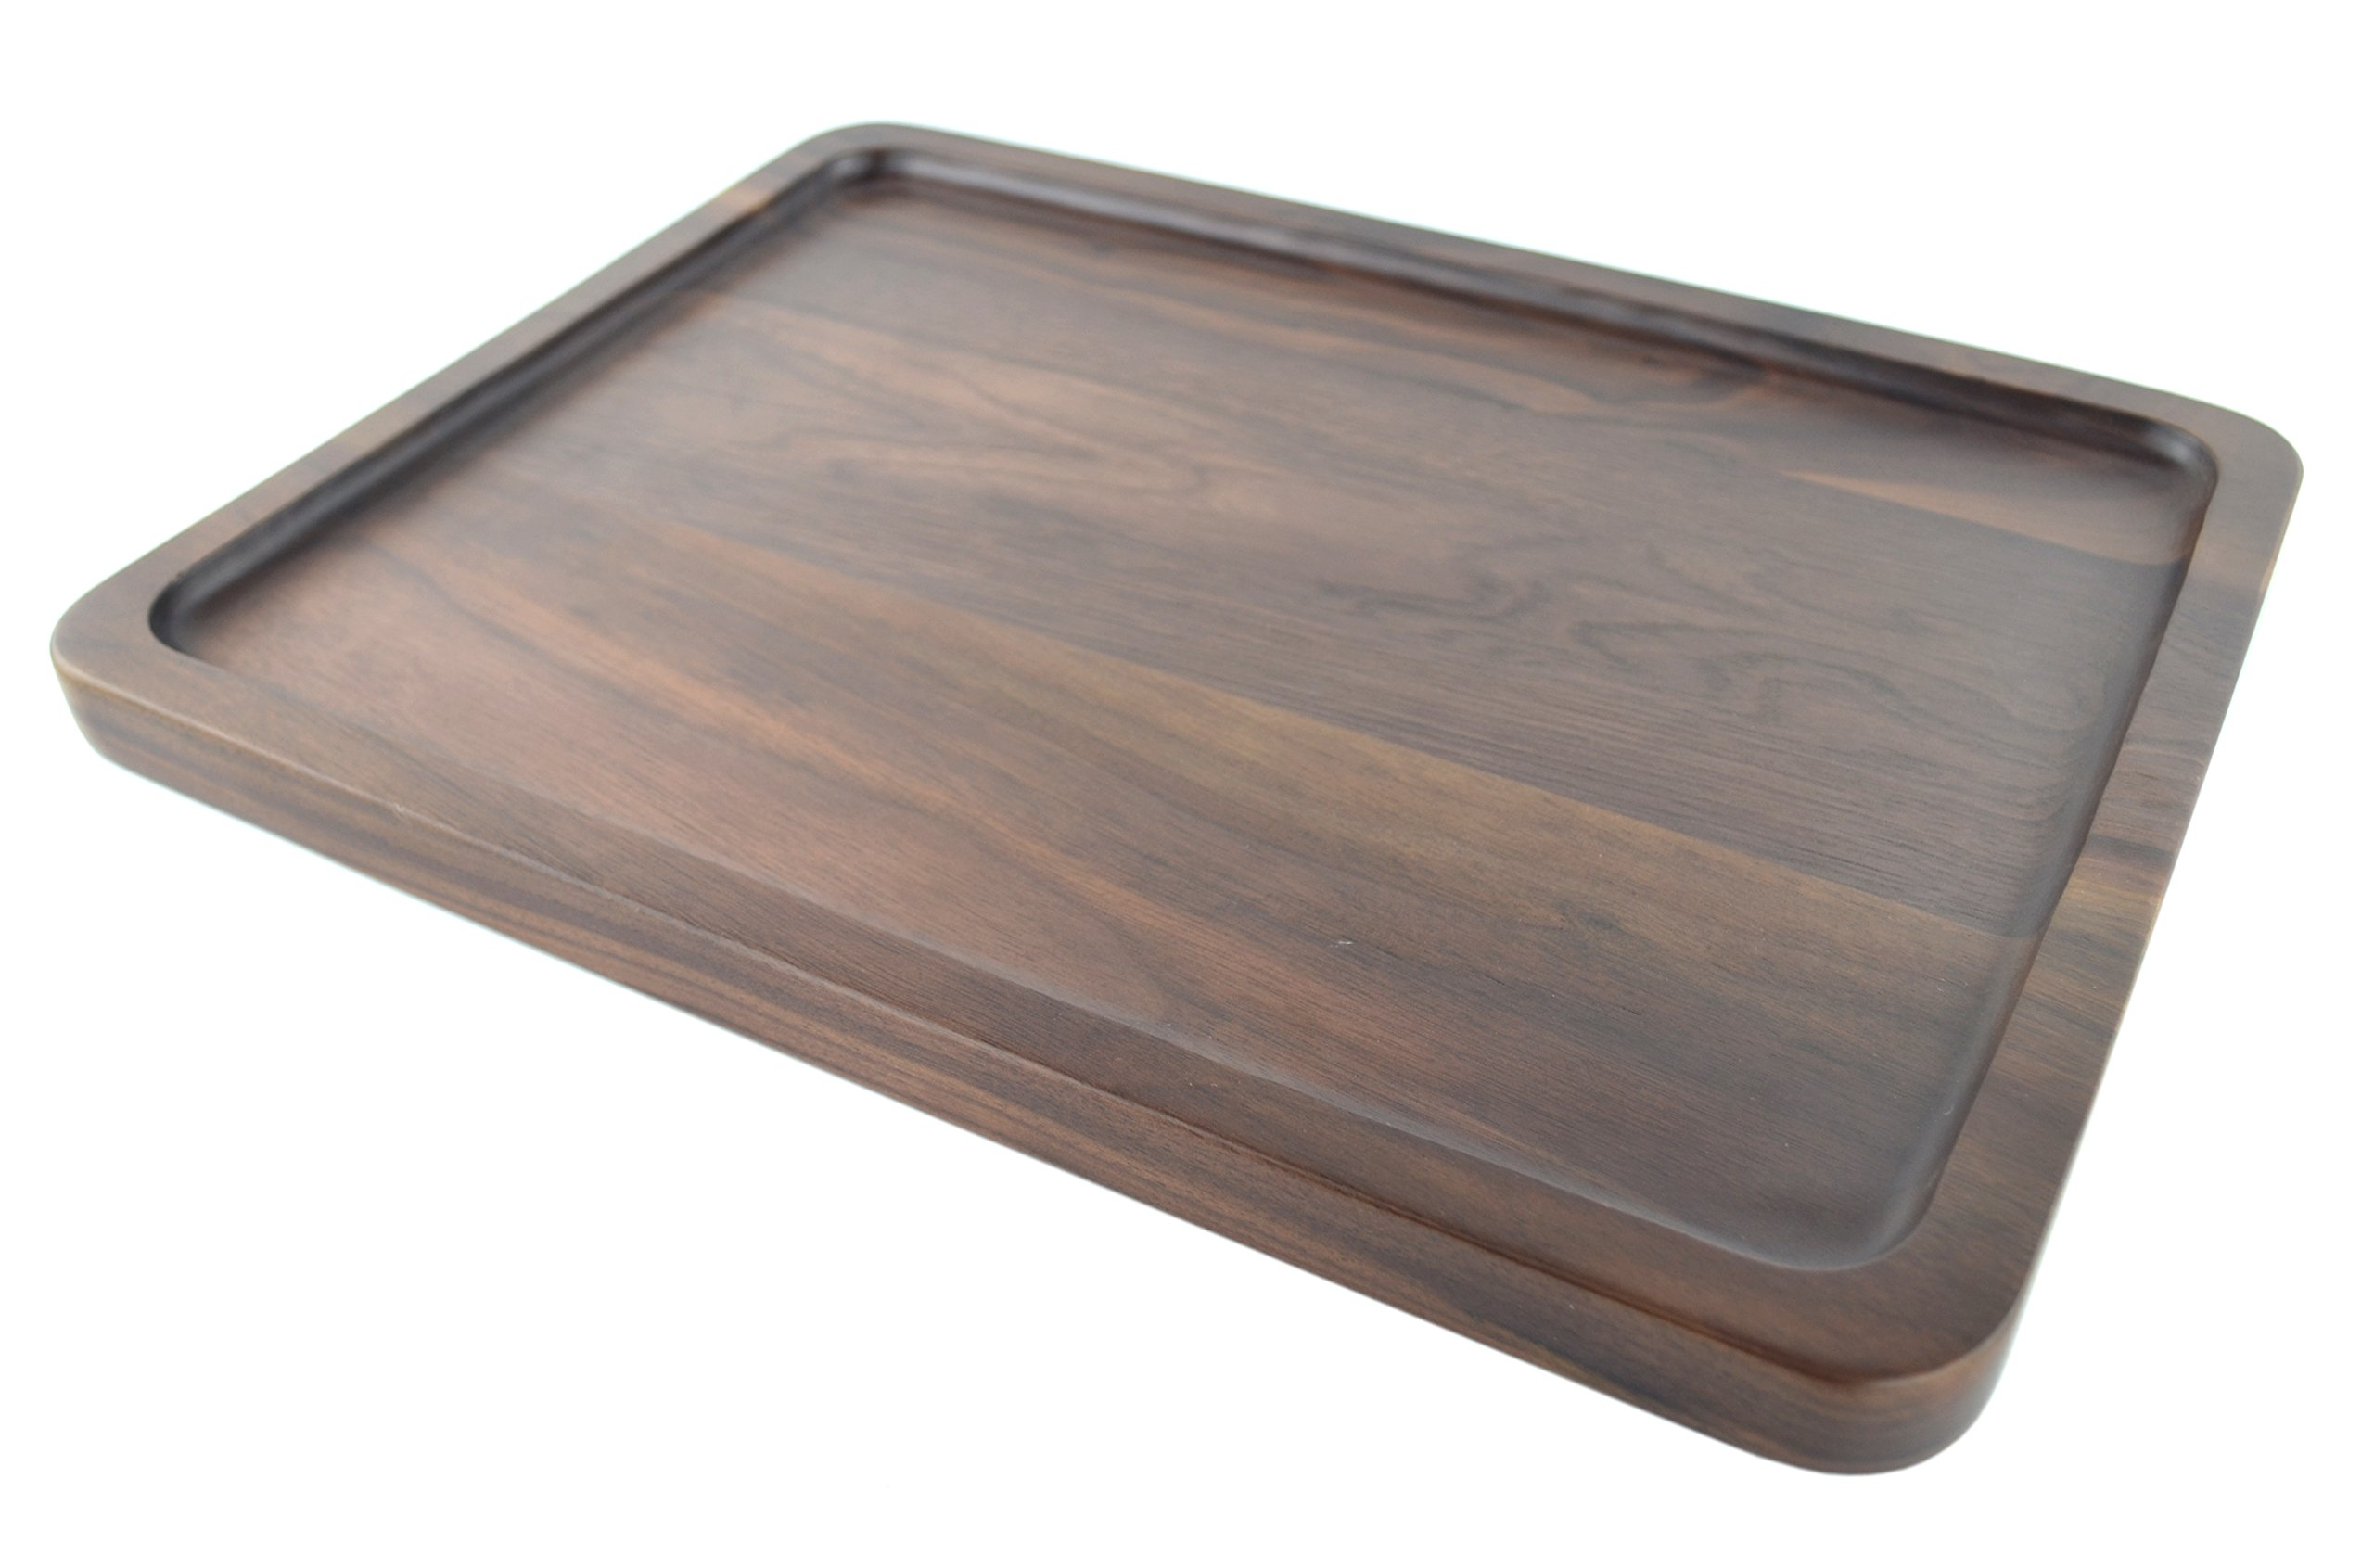 Samyo Black Walnut Solid Wood Rectangular Tableware Serving Tray Handcrafted Decorative Trays Food Tray Serving Platters with gripper for Coffee Wine Cocktail Fruit Meals (Large Size)